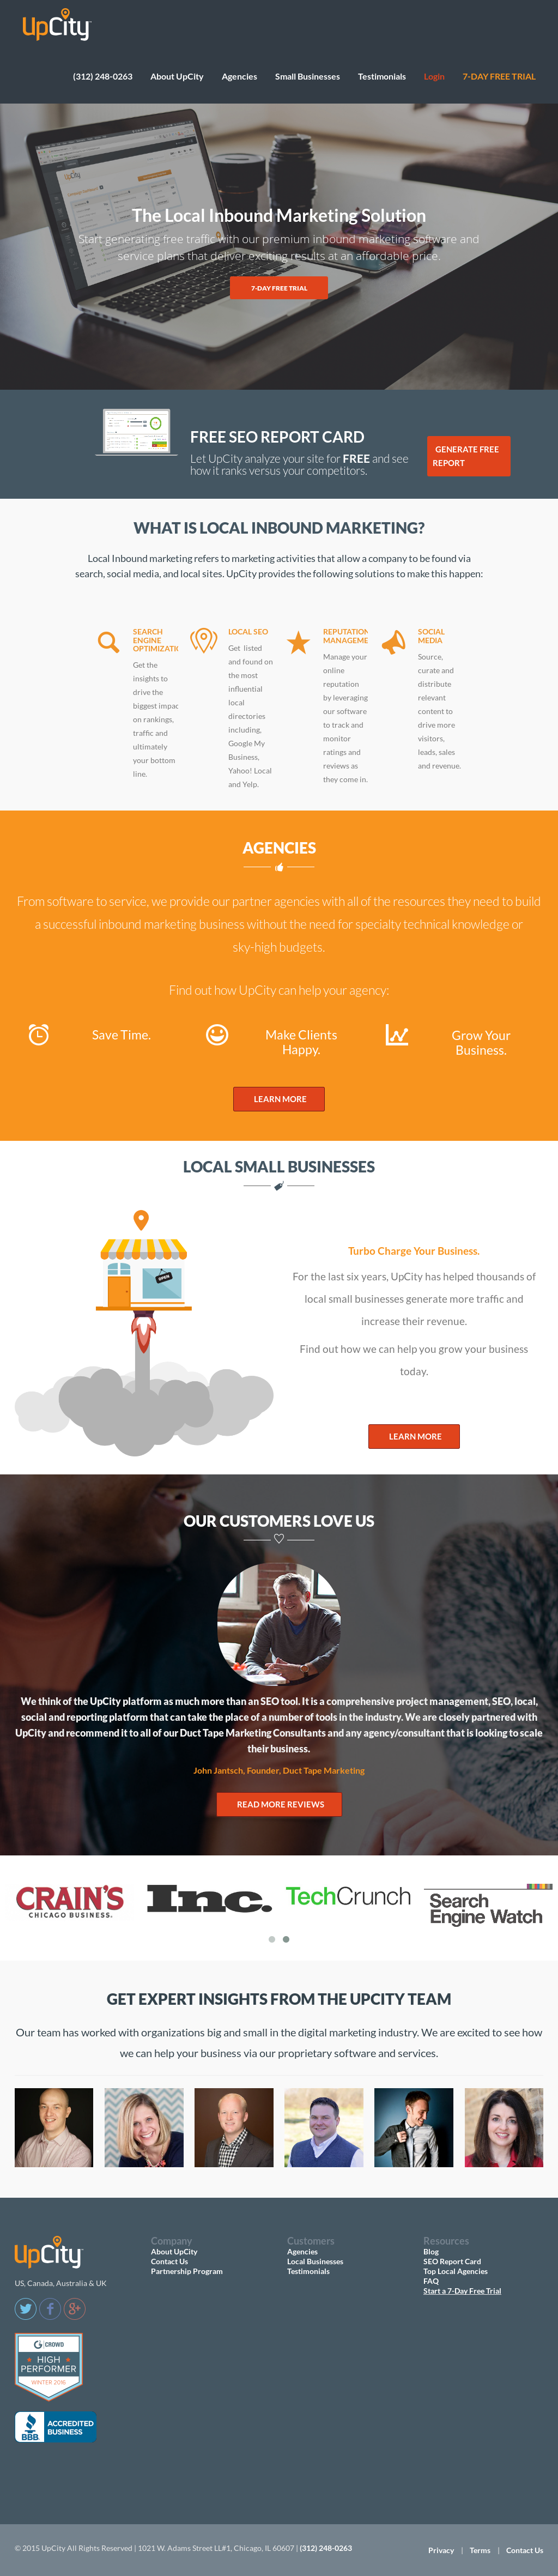 UpCity Competitors, Revenue and Employees - Owler Company Profile